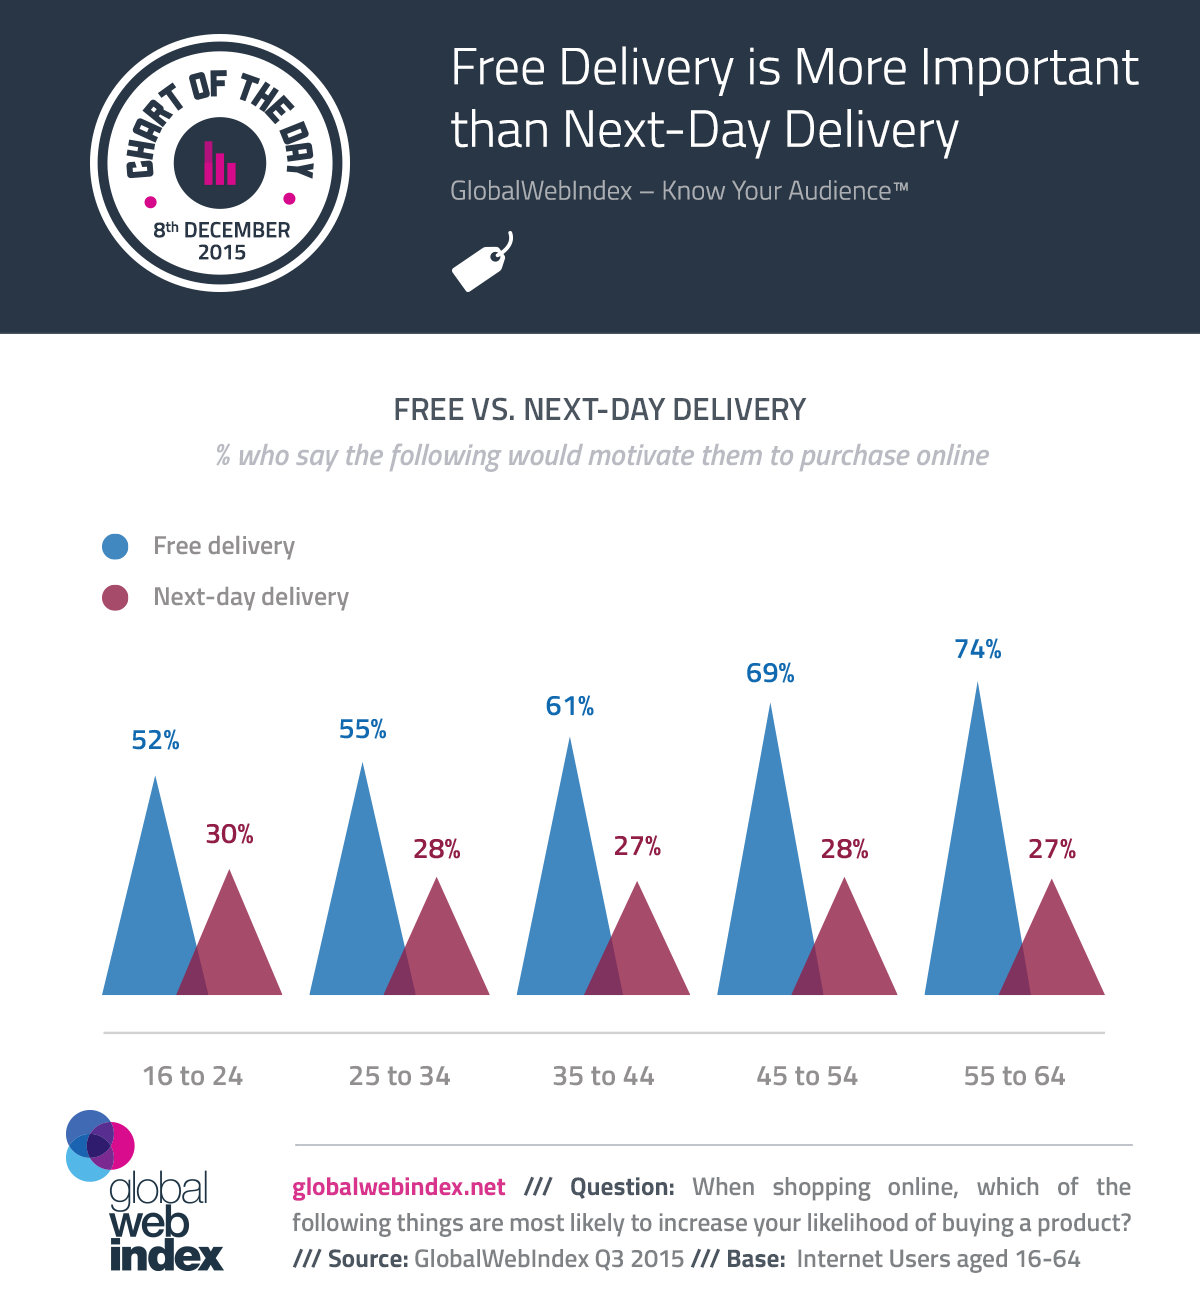 8a9b8424bb2871 COTD-Charts-8-Dec-2015-Free-Delivery-is-More-Important-than-Next-Day- Delivery.png?t=1481640402152